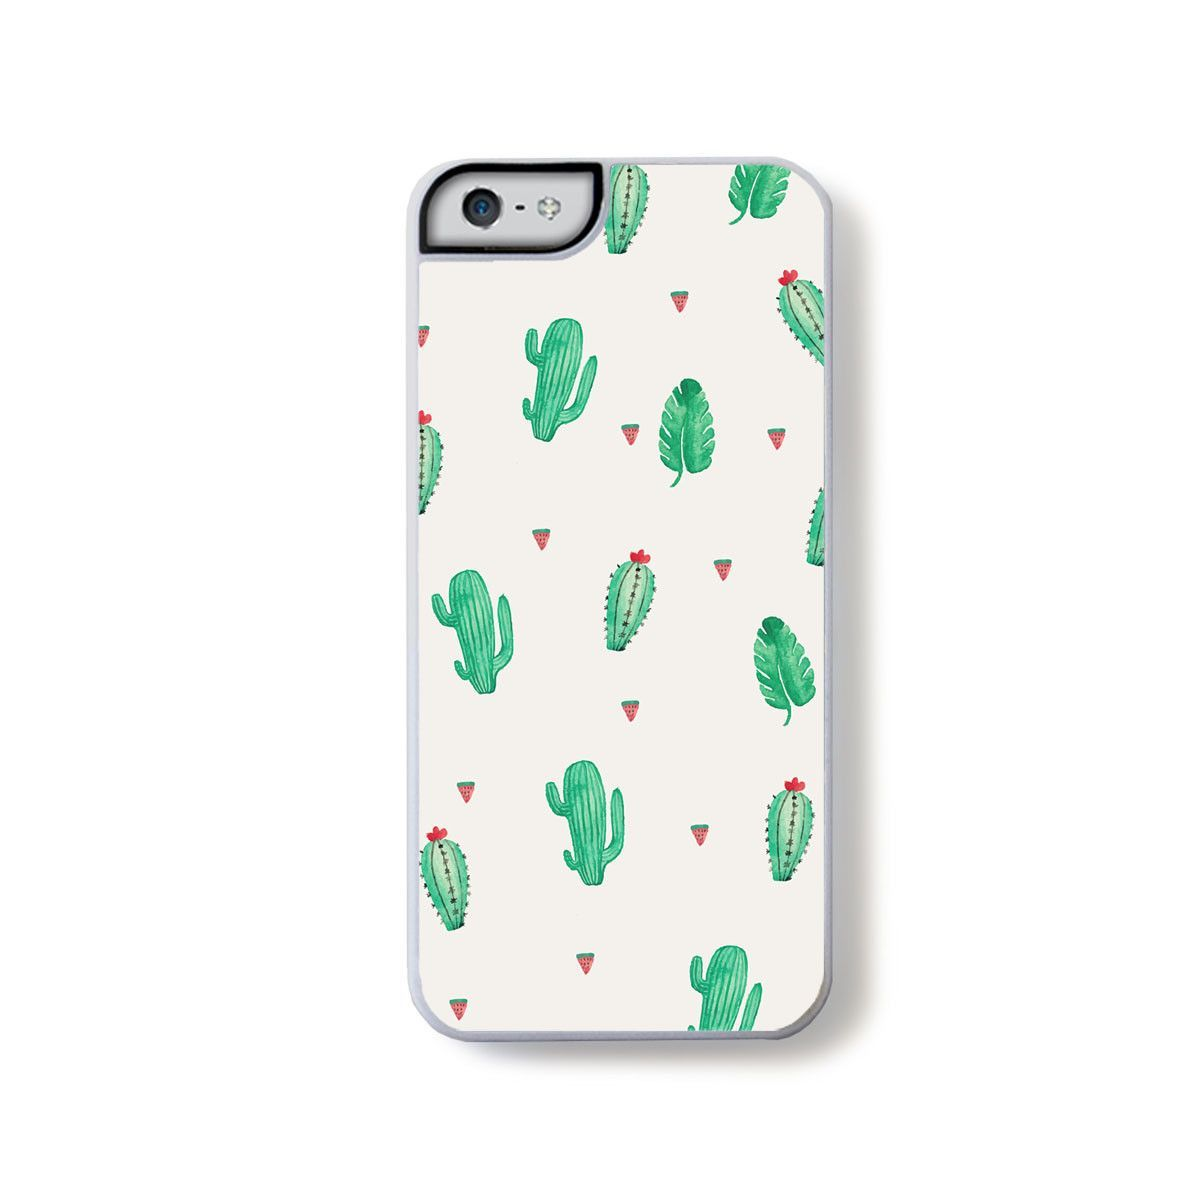 Small green cactus open pattern for iPhone 5